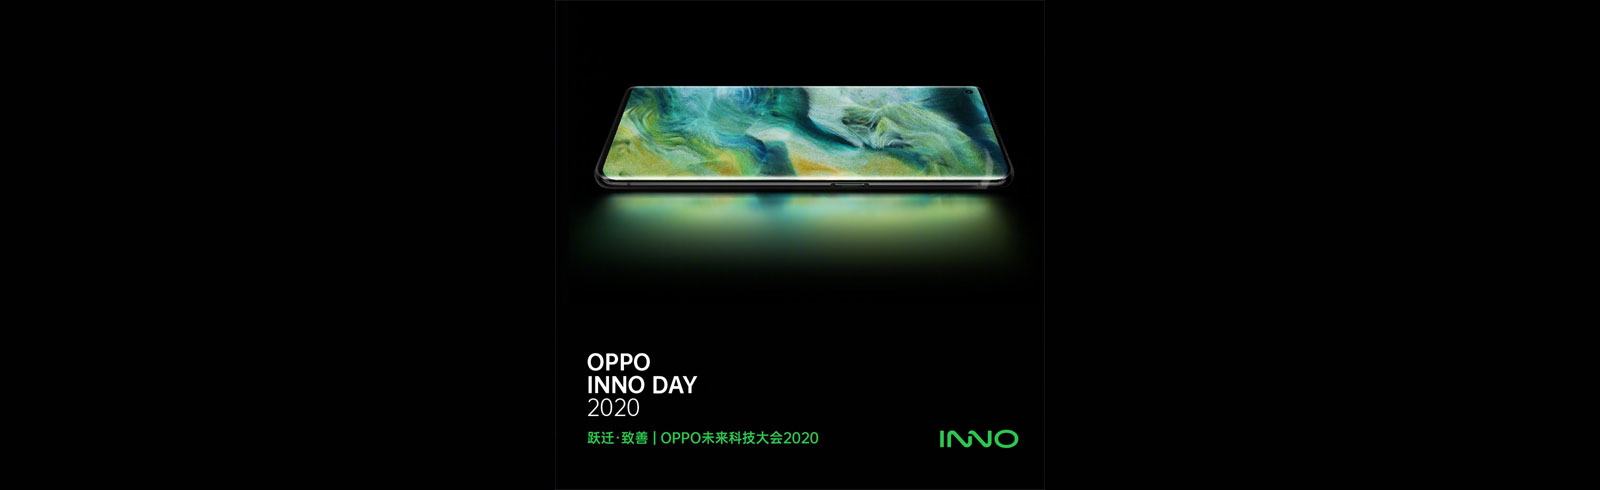 Oppo Inno Day 2020 will be held on November 17-18